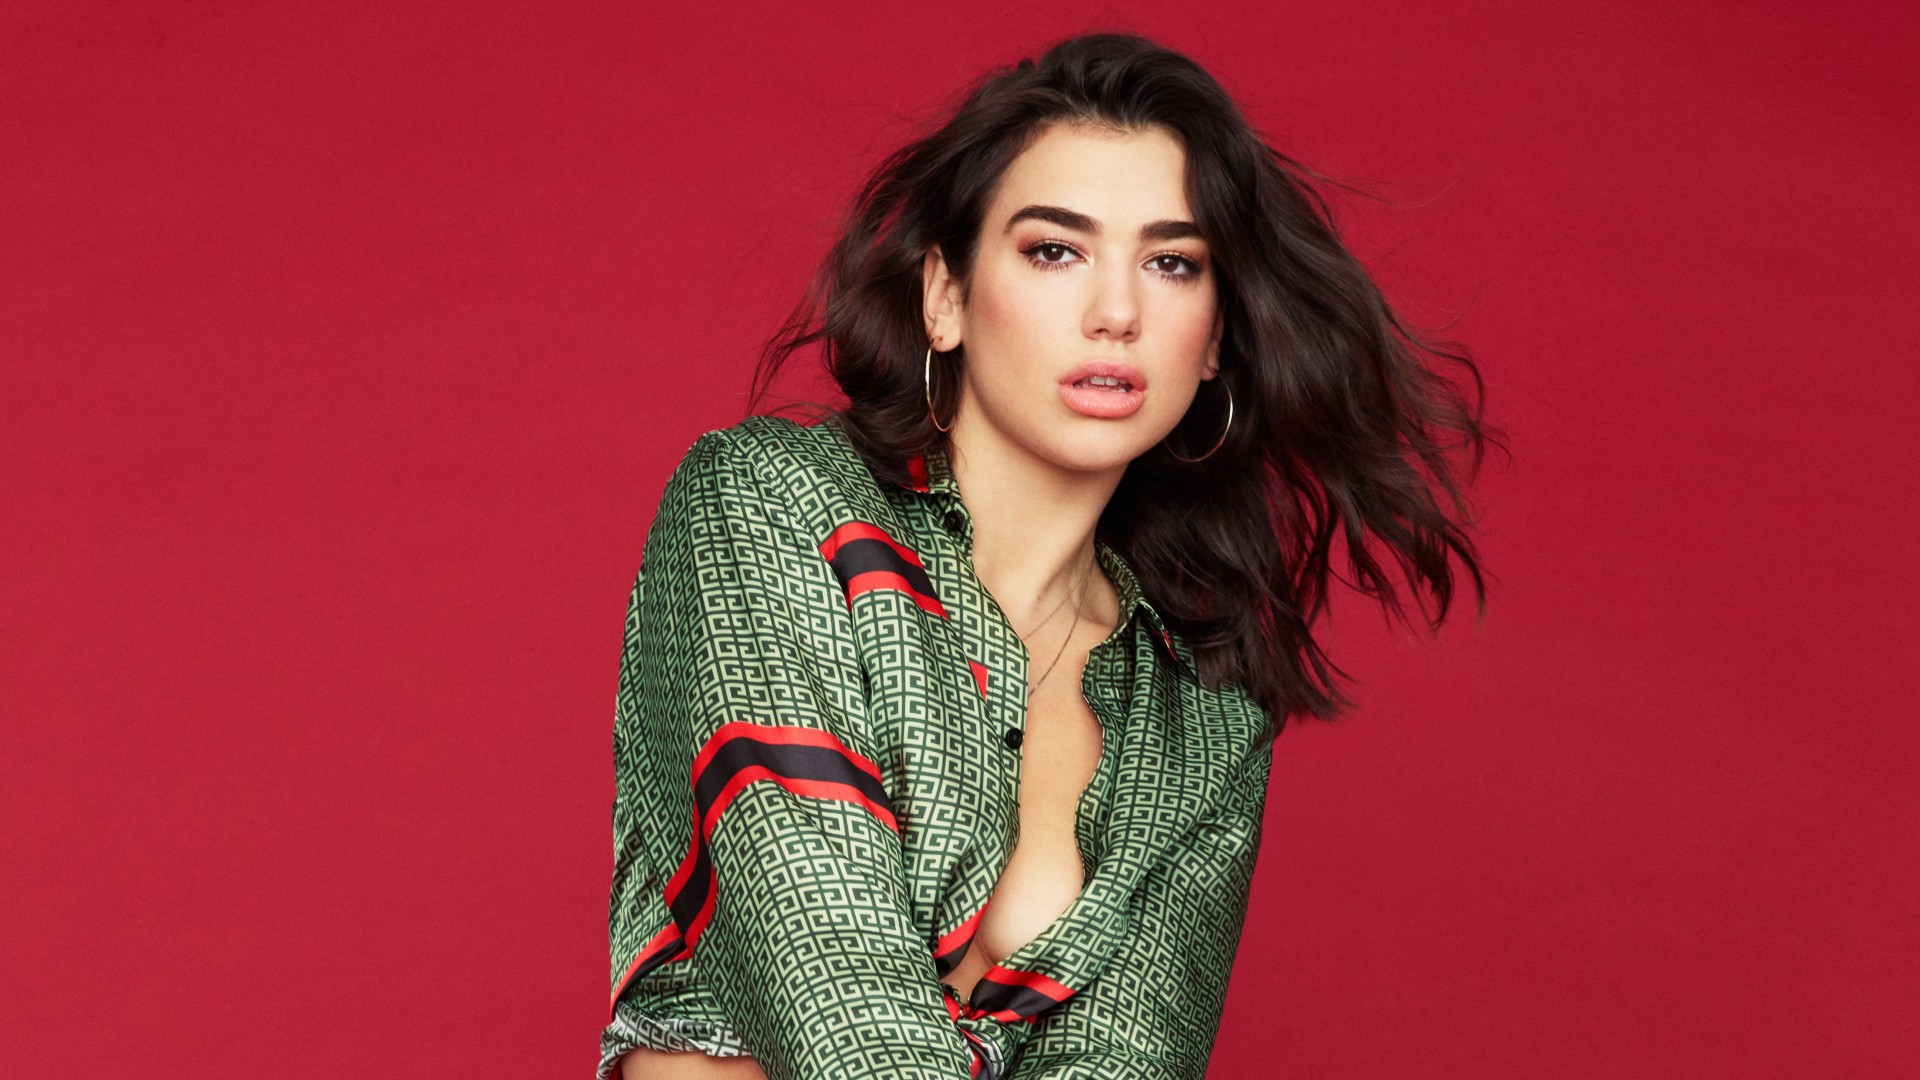 Dua Lipa Hot Background Image